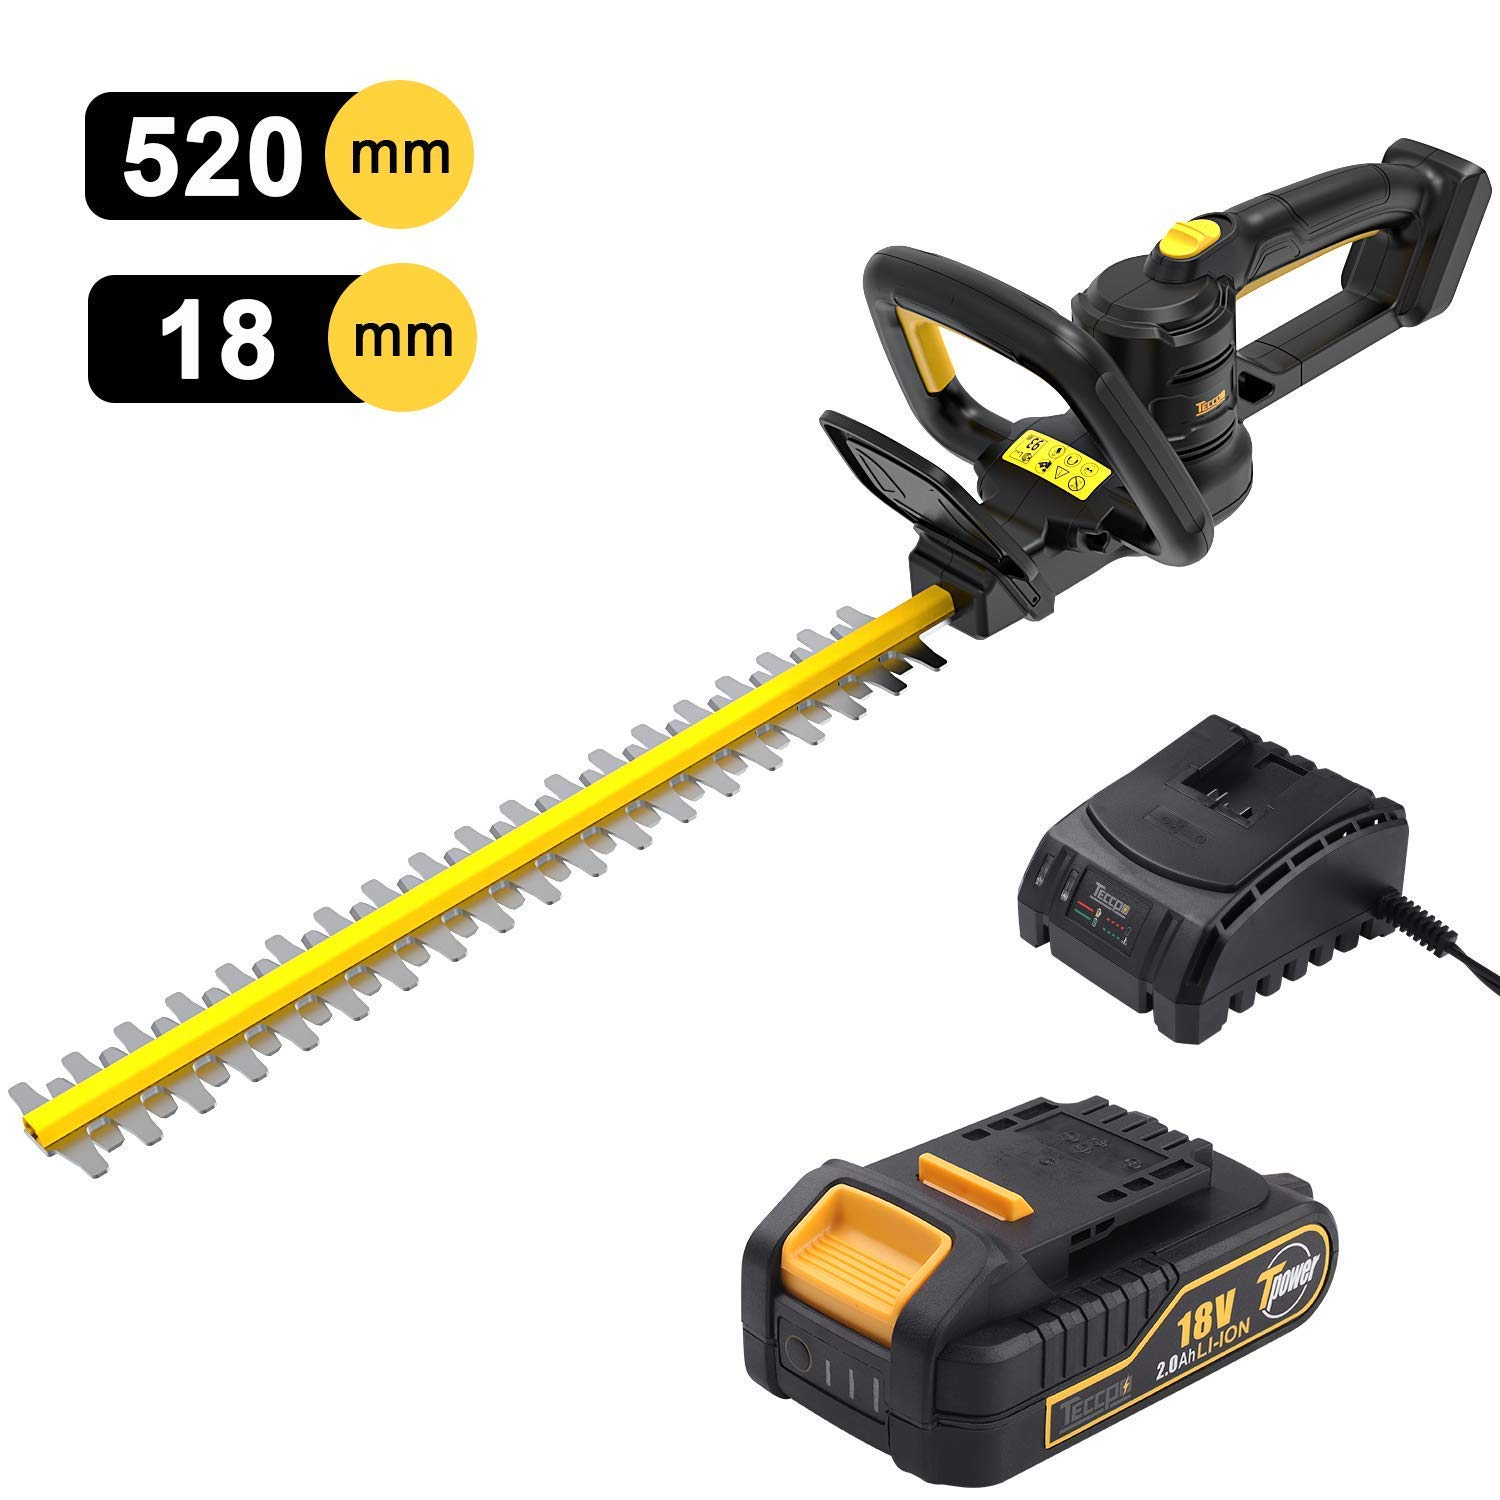 TECCPO Hedge Trimmer, 18V 2.0 Ah Cordless Hedge Trimmer, 520mm Blade Length, 18mm Tooth Opening, Dual Action Laser Blade, Triple Safety Start Button,with Charger and Battery - TDHT02G